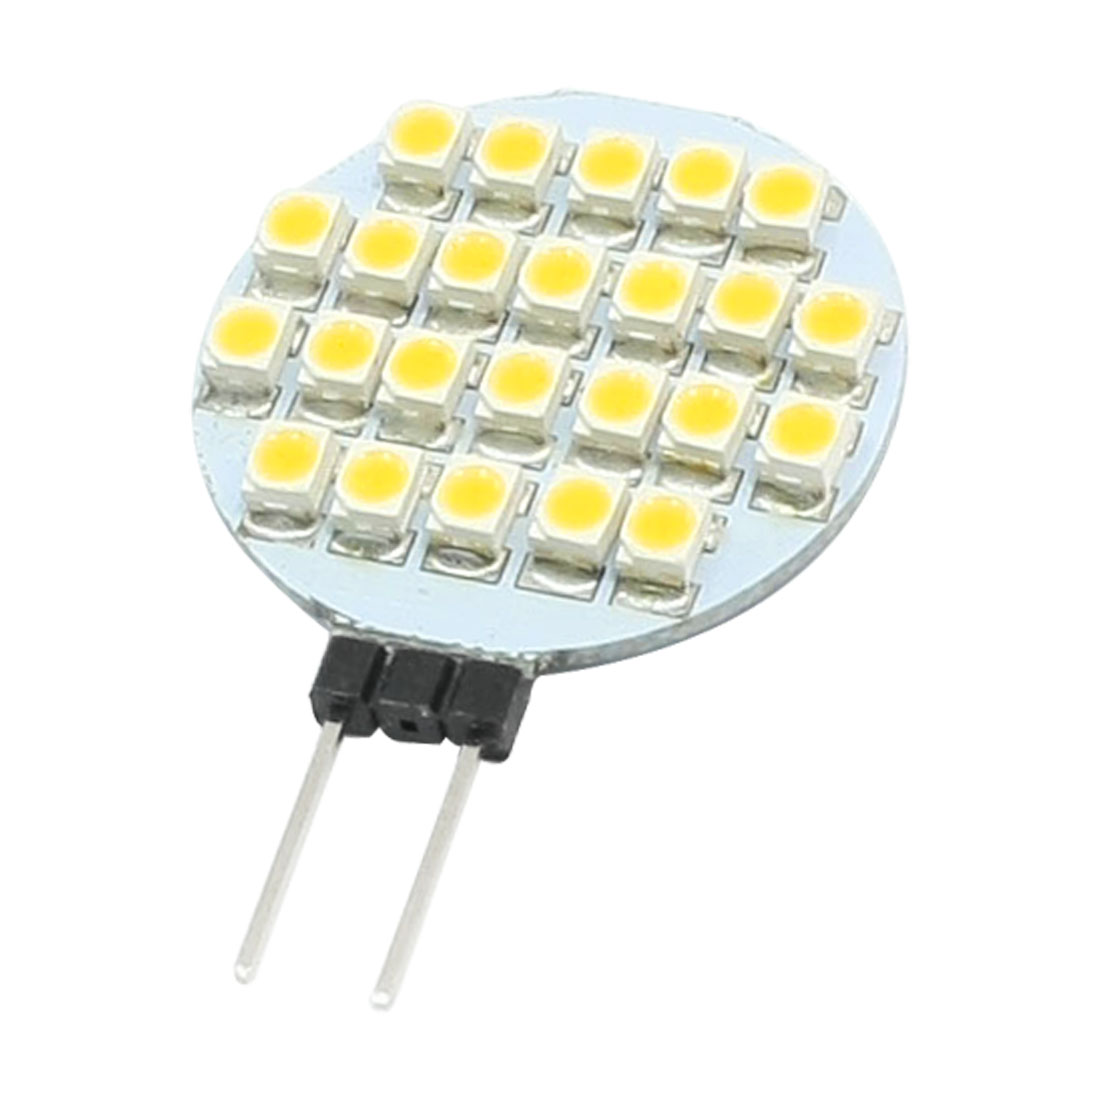 Car Auto Truck Vehicle Warm White G12 Base 3528 SMD 24 LED Car 2 Side Plug Pin Light Bulb Lamp DC12V Internal